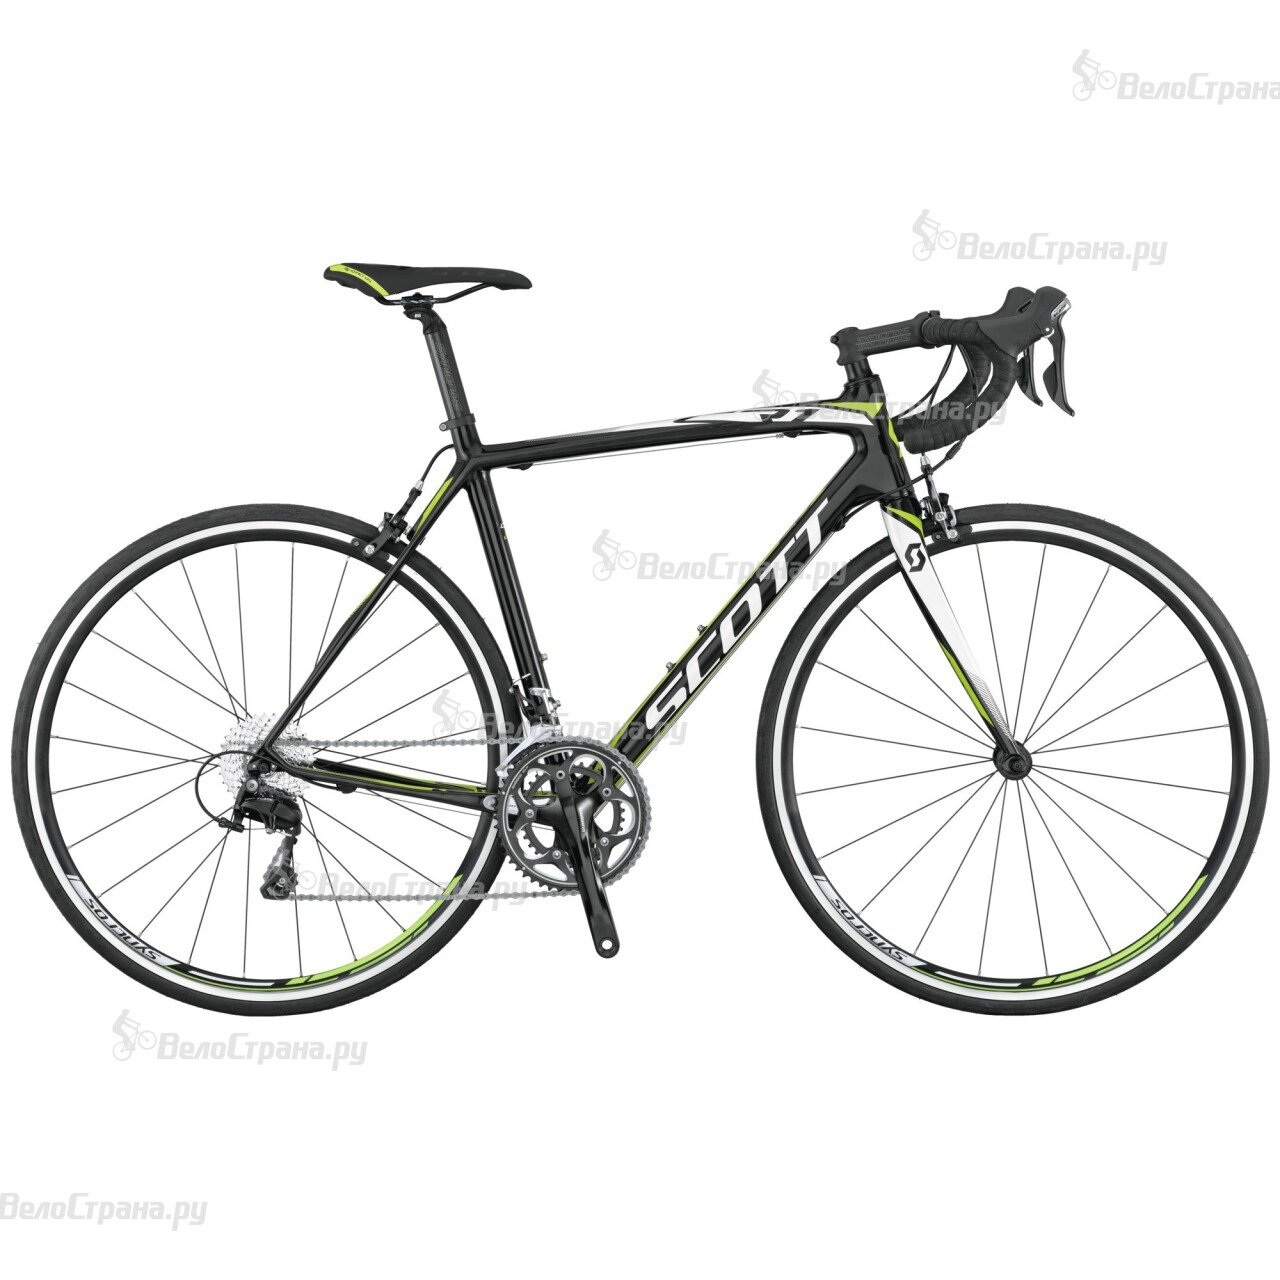 Велосипед Scott CR1 20 30 speed (2015) велосипед scott cr1 10 2015